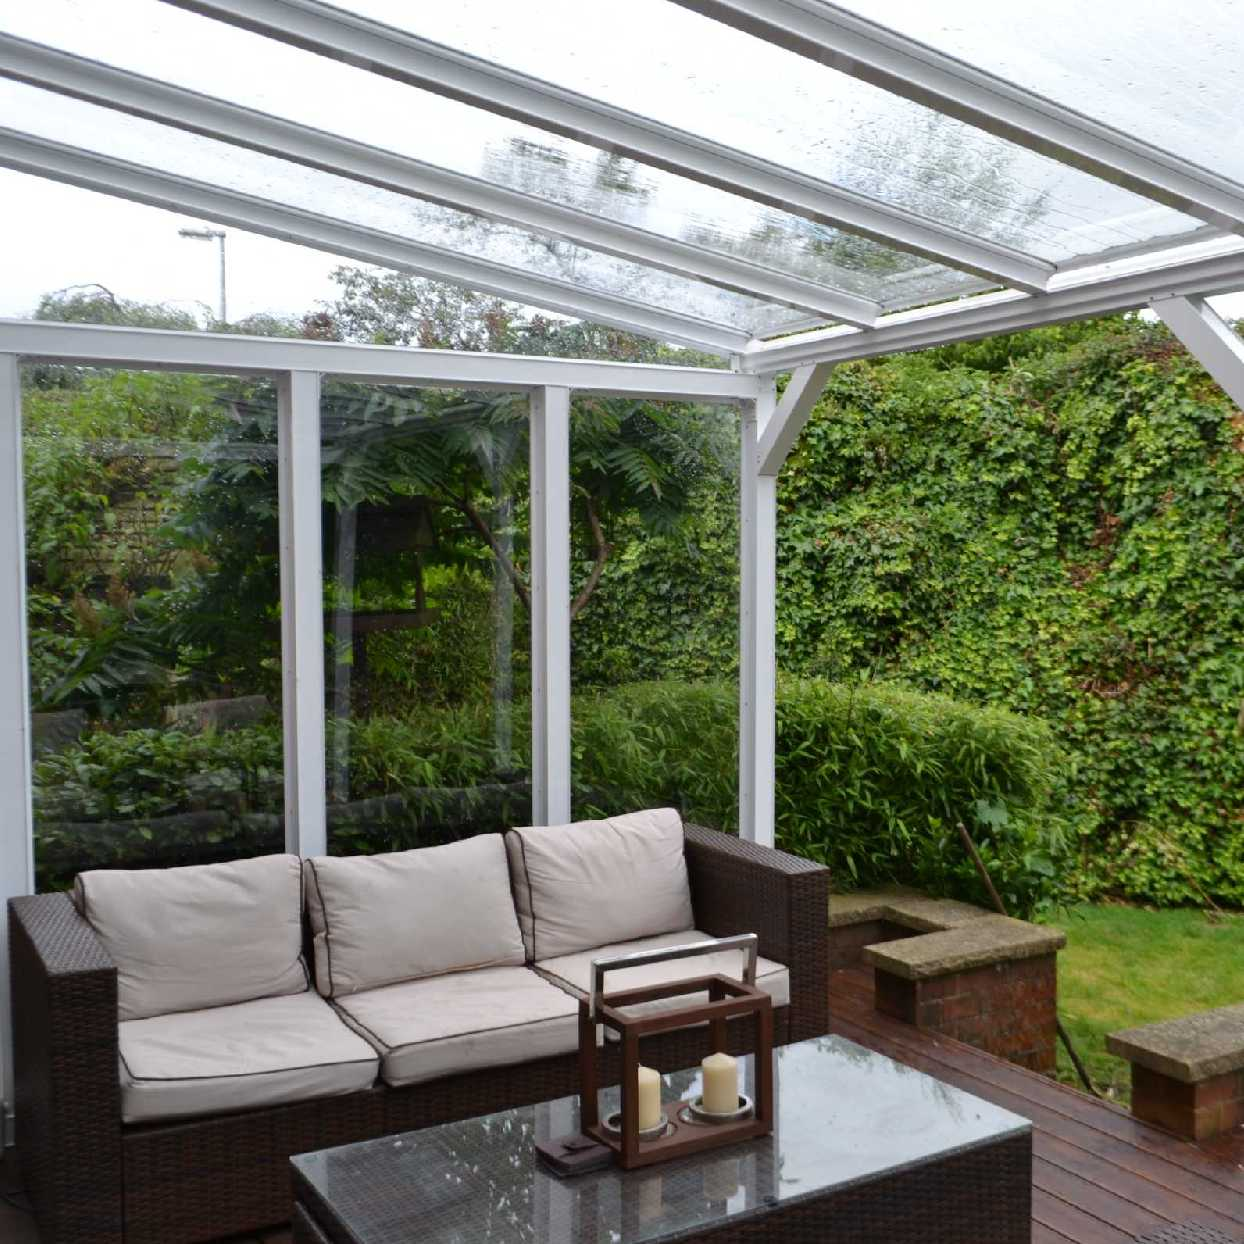 Great selection of Omega Smart Lean-To Canopy with 16mm Polycarbonate Glazing - 6.0m (W) x 1.5m (P), (3) Supporting Posts